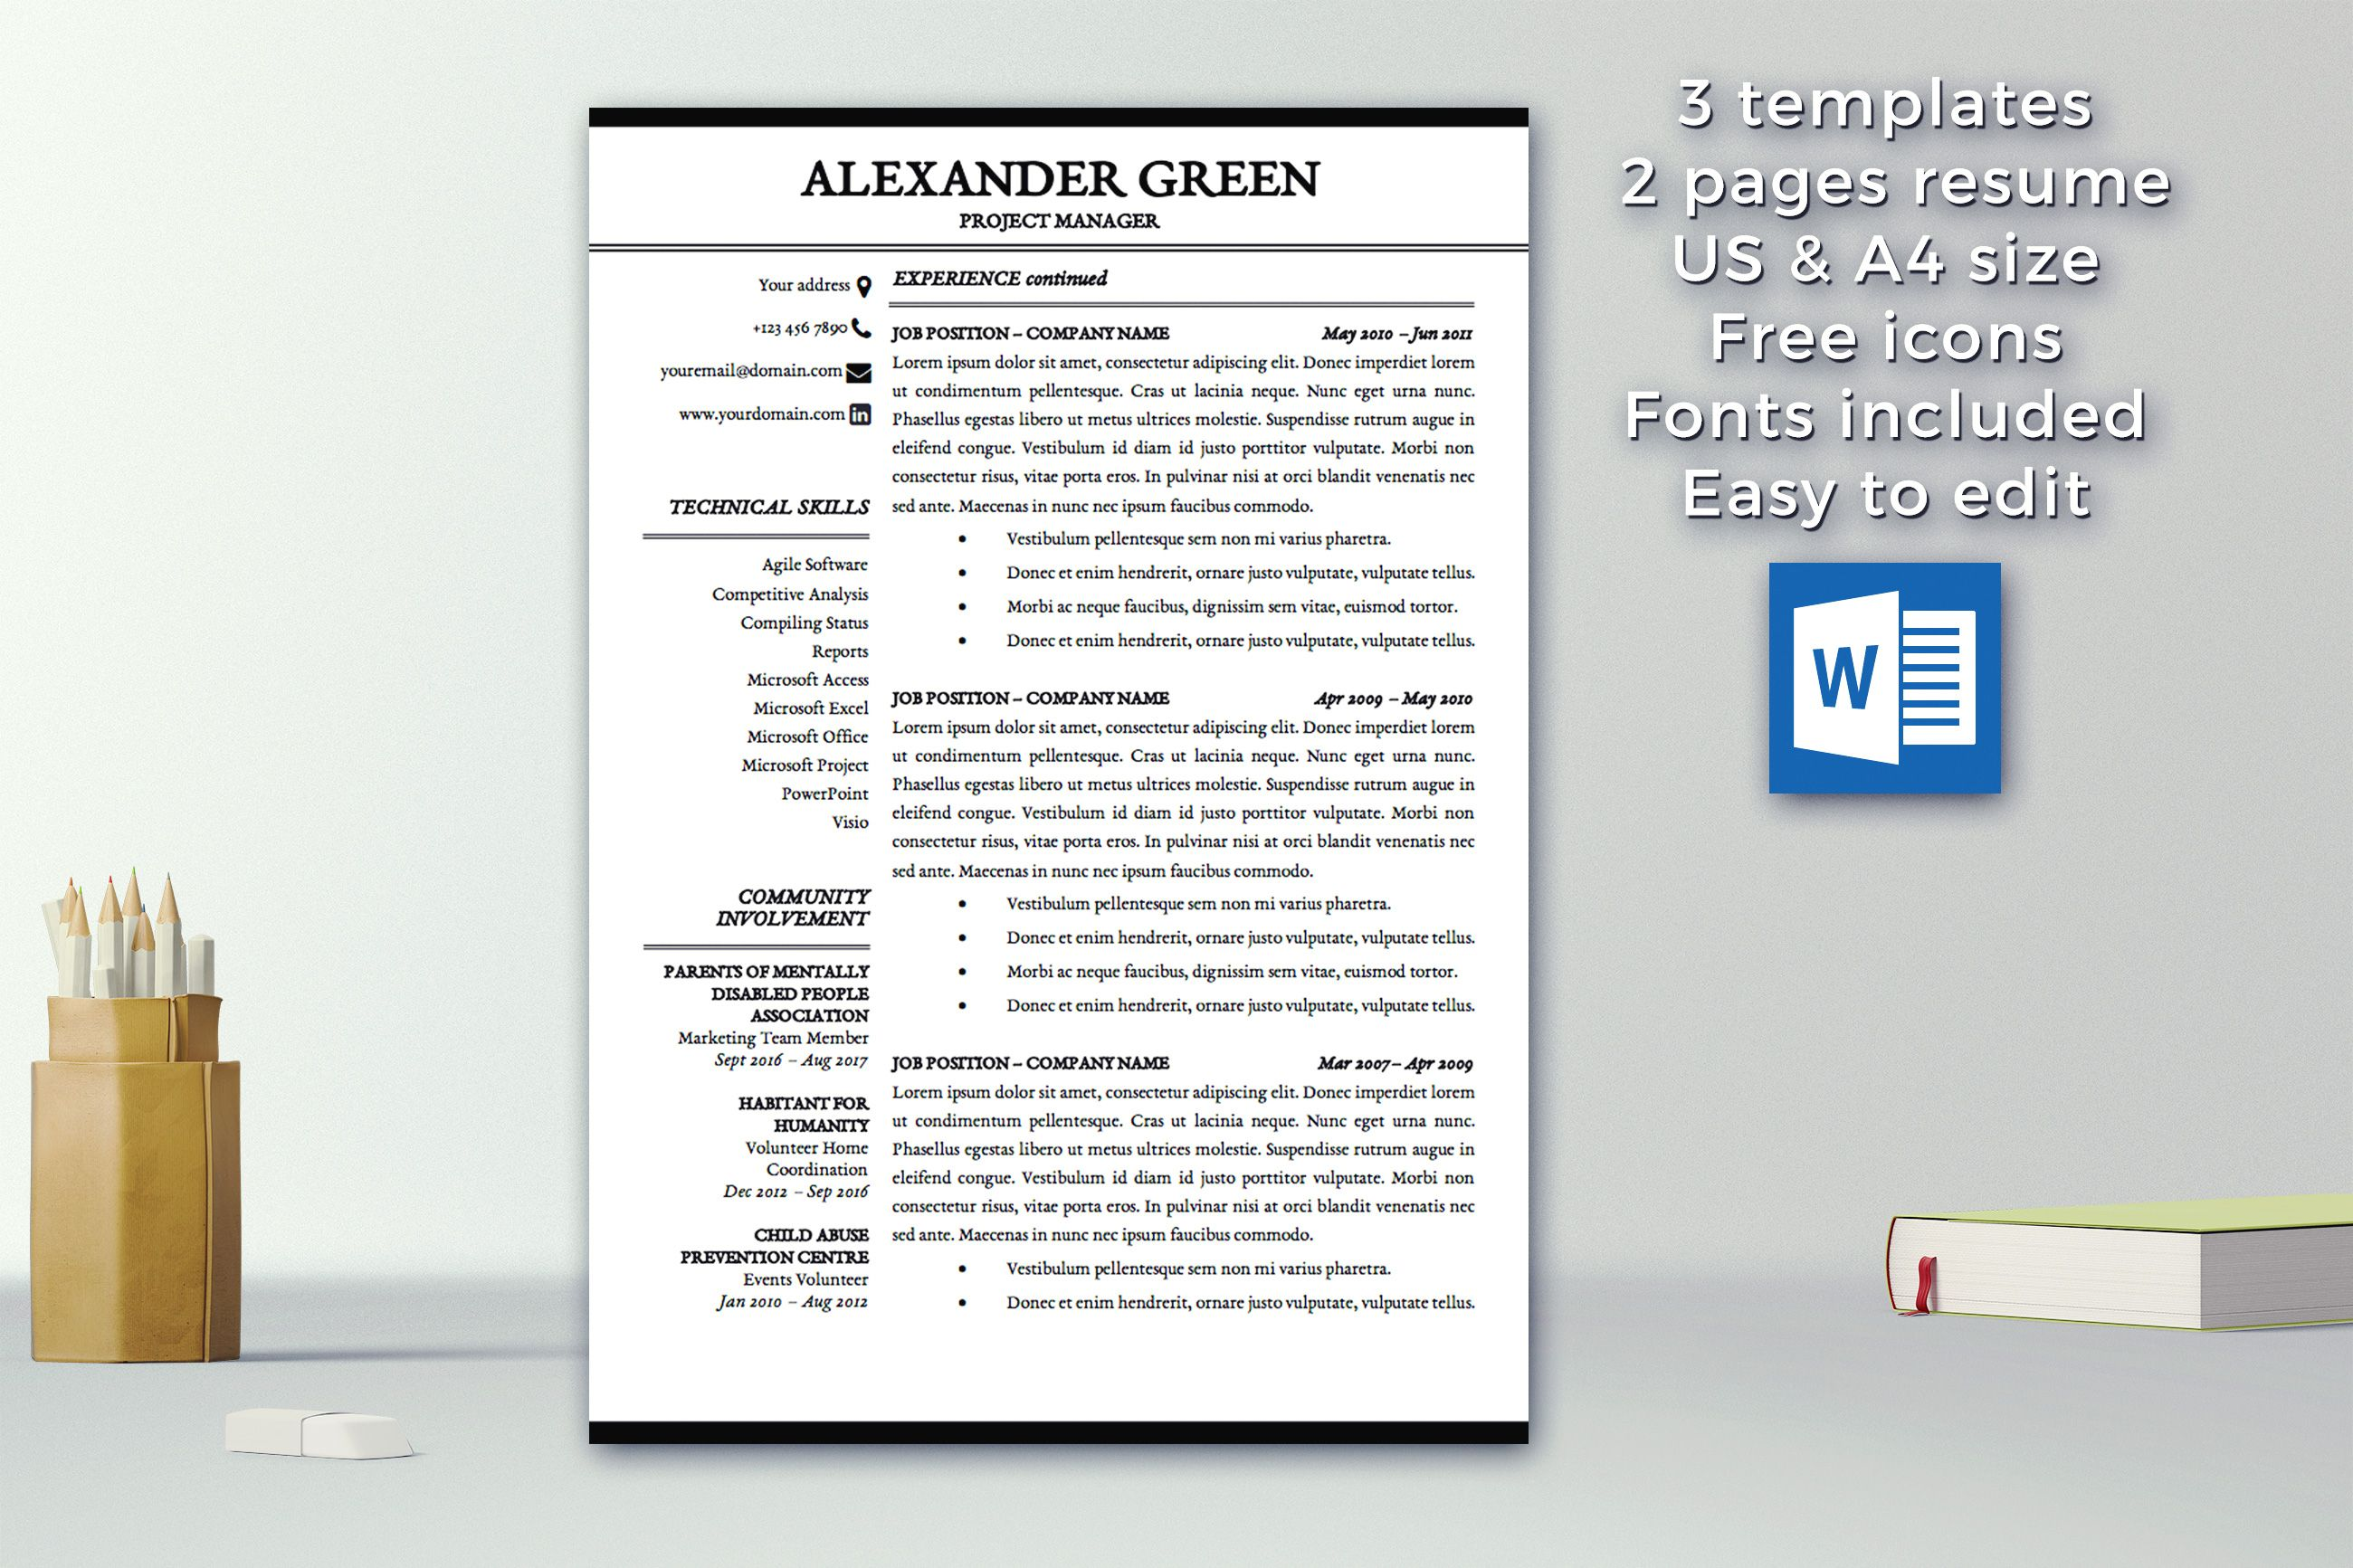 Professional resume template instant download 1 2 pages cv professional resume template instant download 1 2 pages cv template professional resume template yelopaper Choice Image